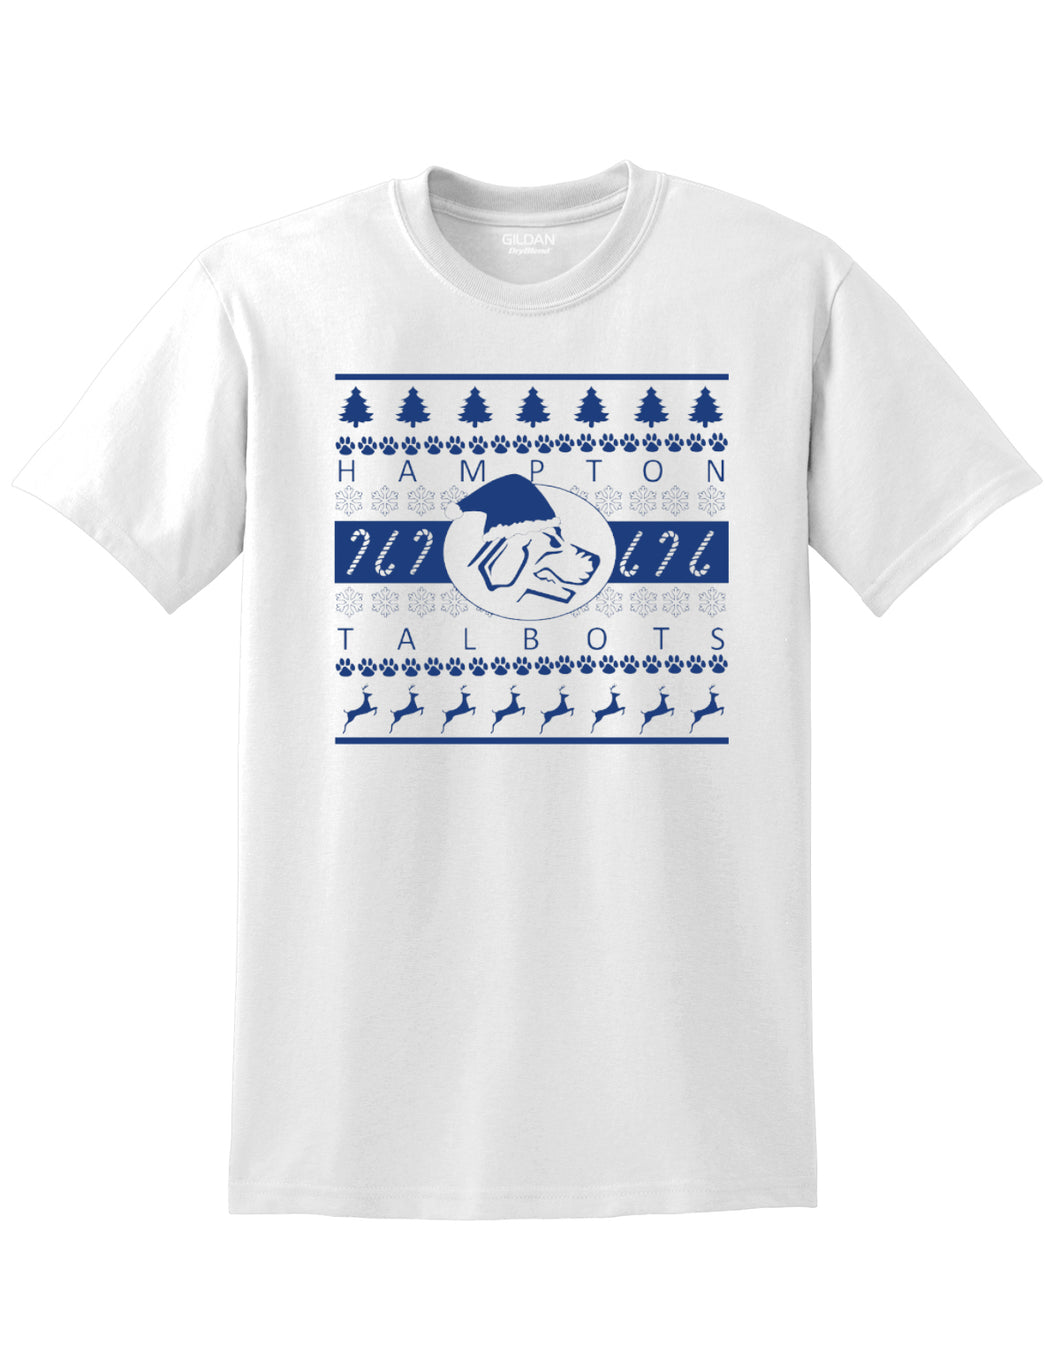 Hampton Band Holiday - 8000 Short Sleeve White Tee